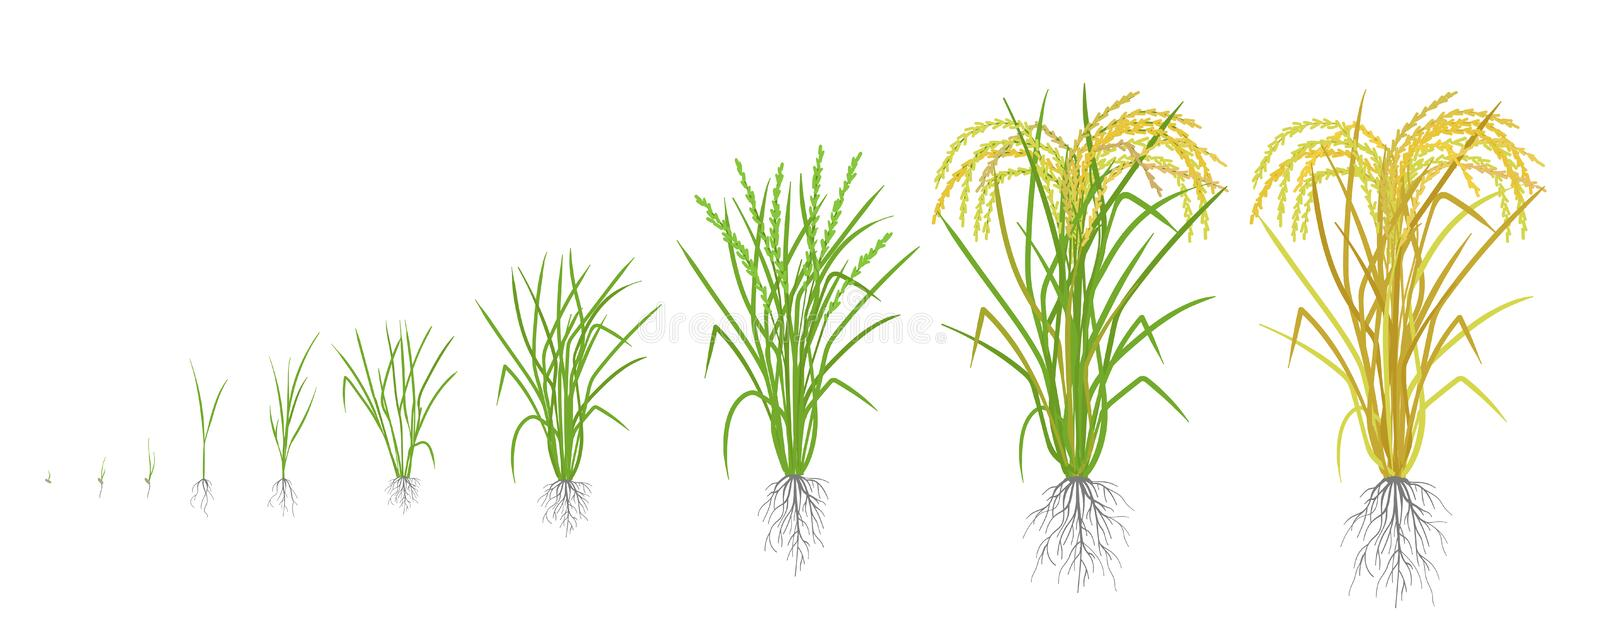 Growth stages of rice plant. Rice increase phases. Vector illustration. Oryza sativa. Ripening period. The life cycle. Use fertilizers. On white background. It royalty free illustration